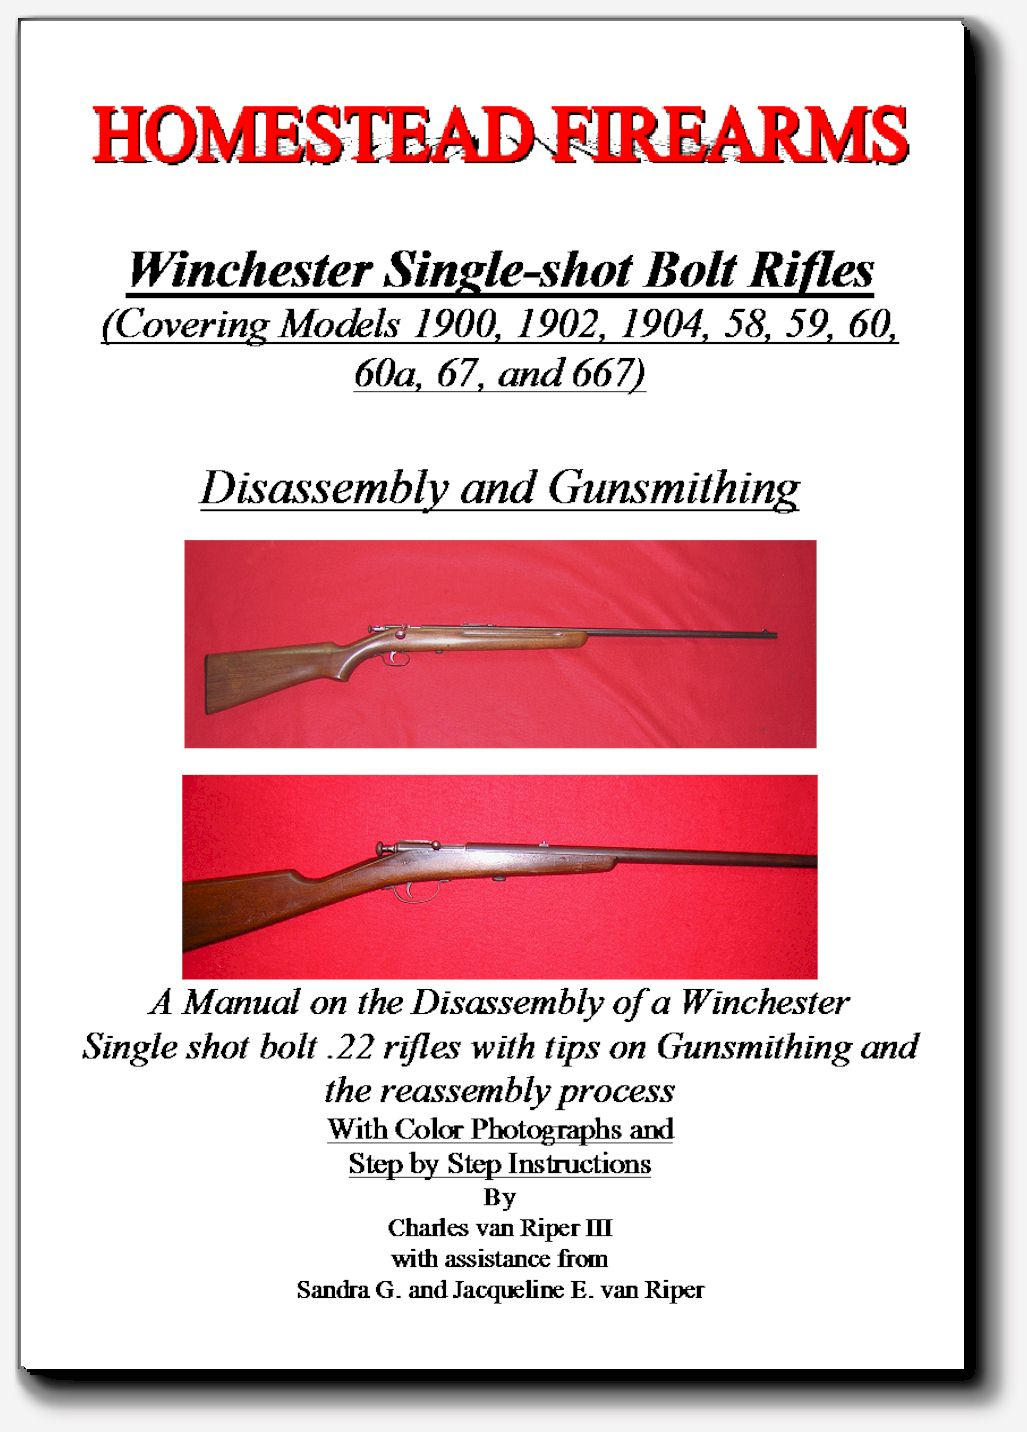 Bolt Action Winchester 22, Models 67, 1900, 1902, 1904, 58, 59, 60, 1895 Winchester  Takedown Disassembly and Gunsmithing Manual